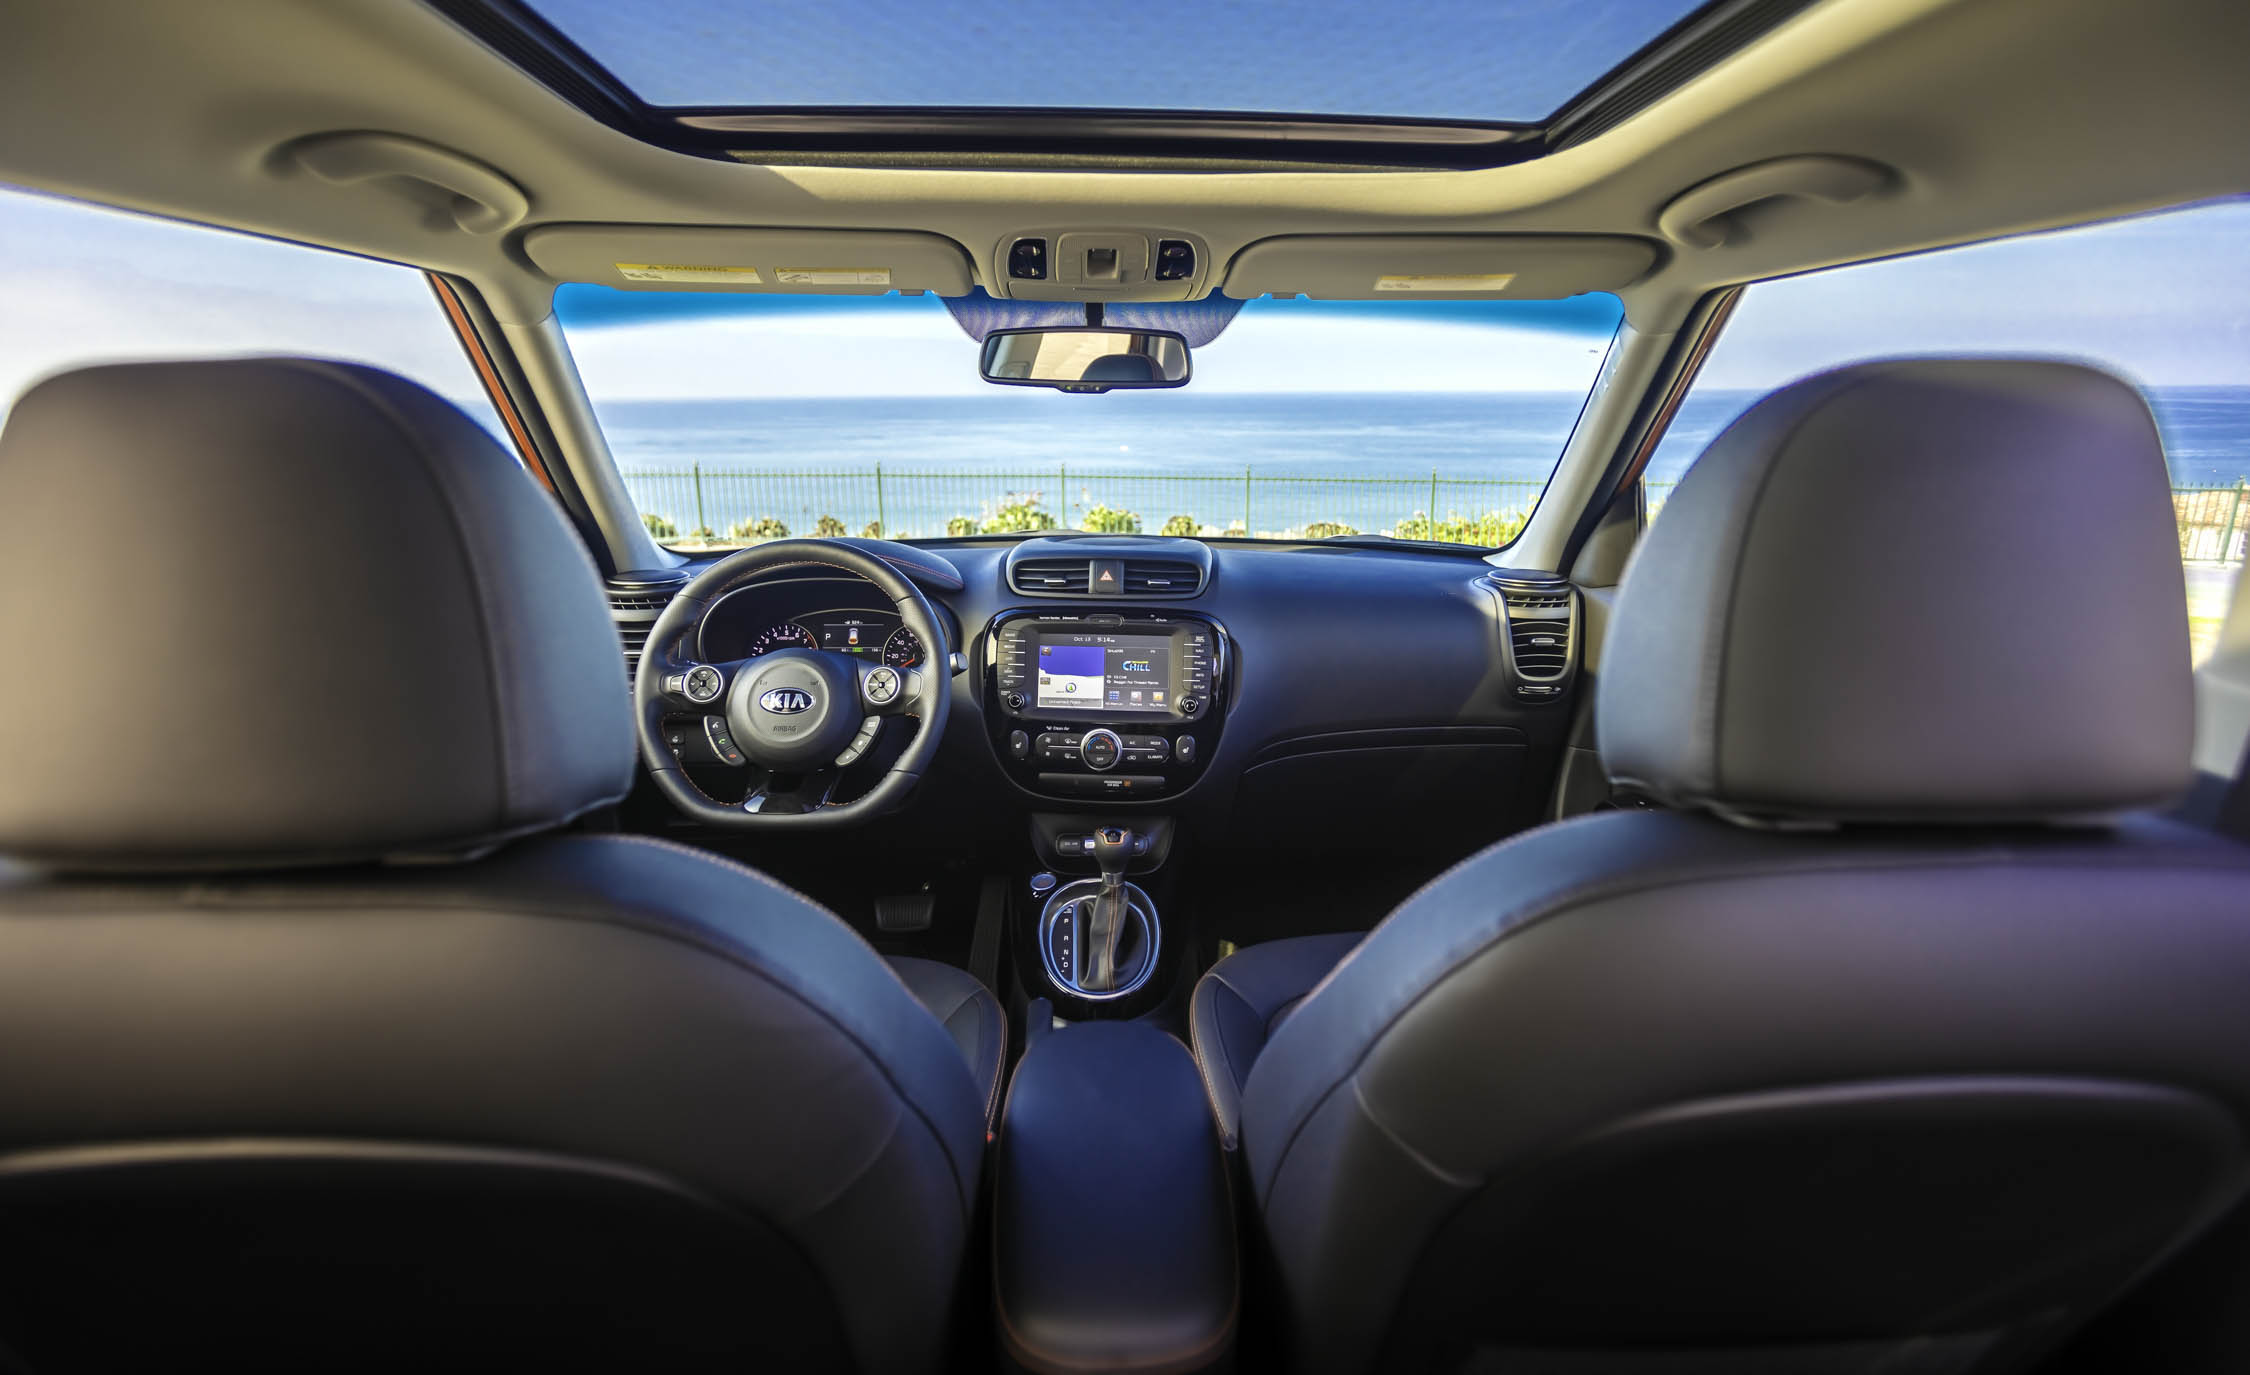 2017 Kia Soul Turbo Interior (View 8 of 15)